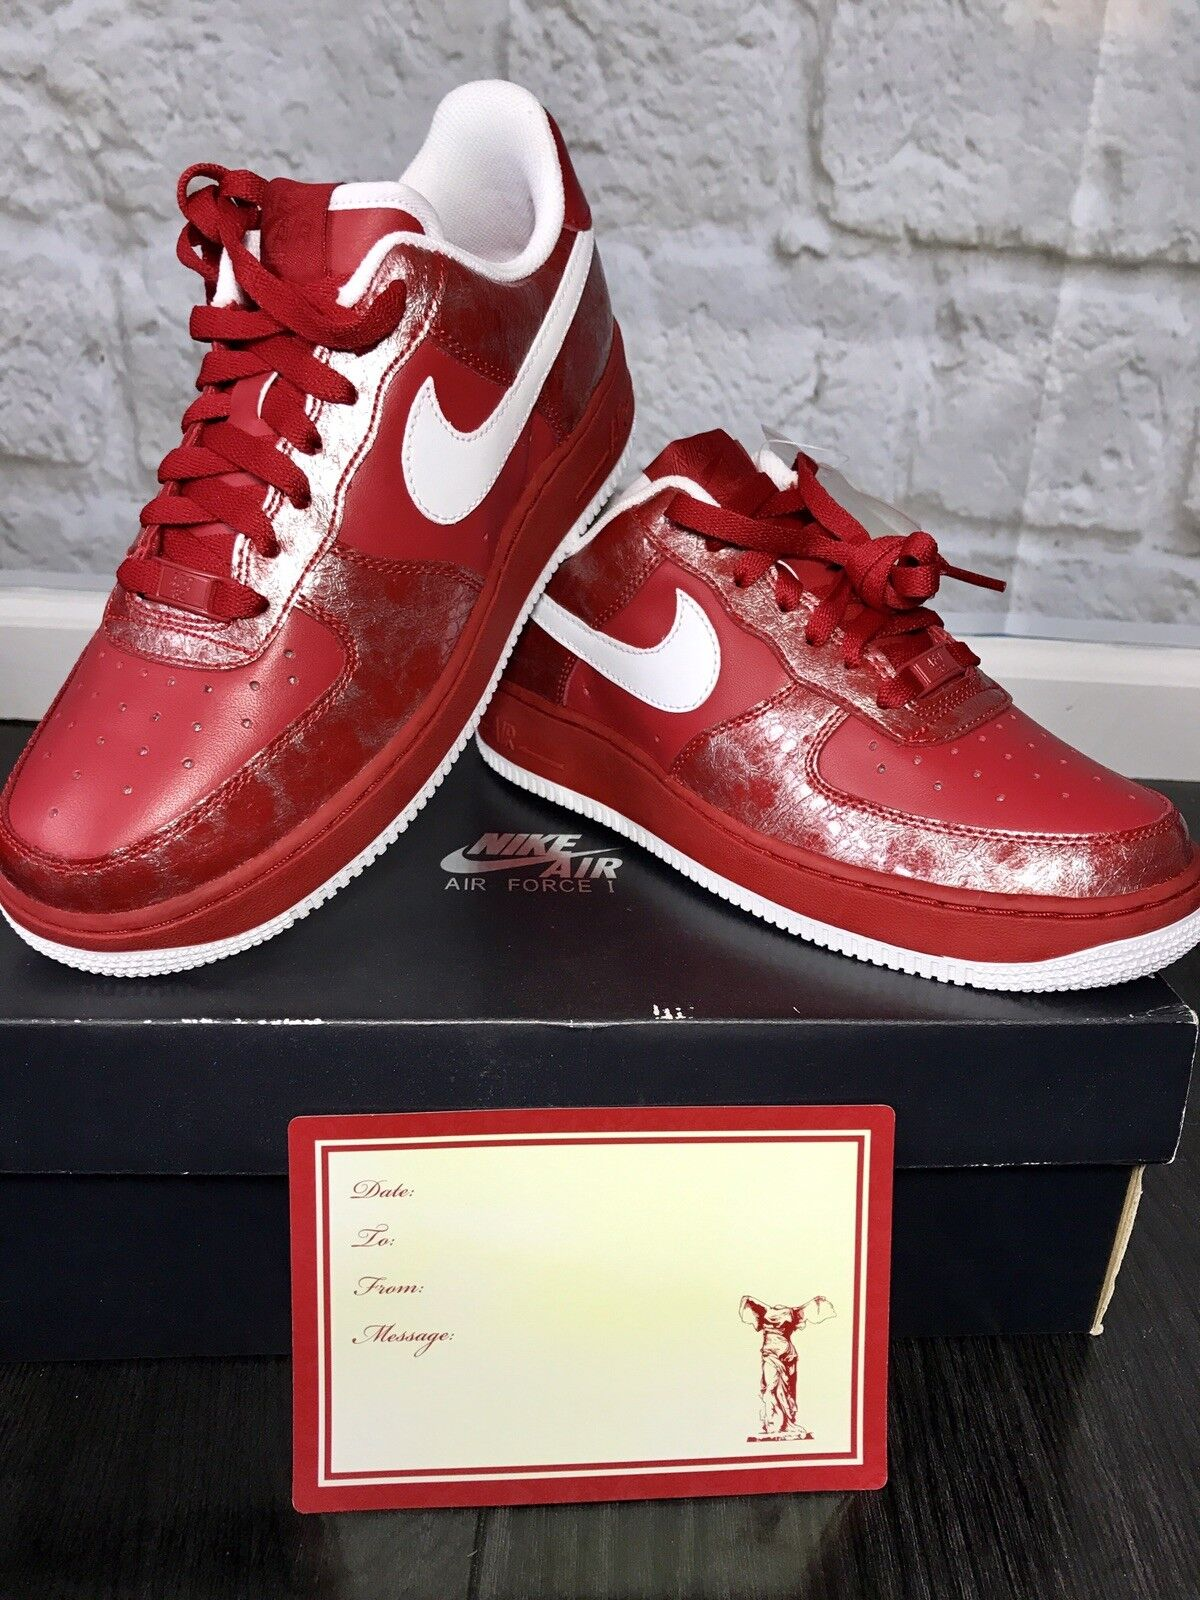 Nike Air Force 1 Low Valentines Varsity Red White Women's 7.5